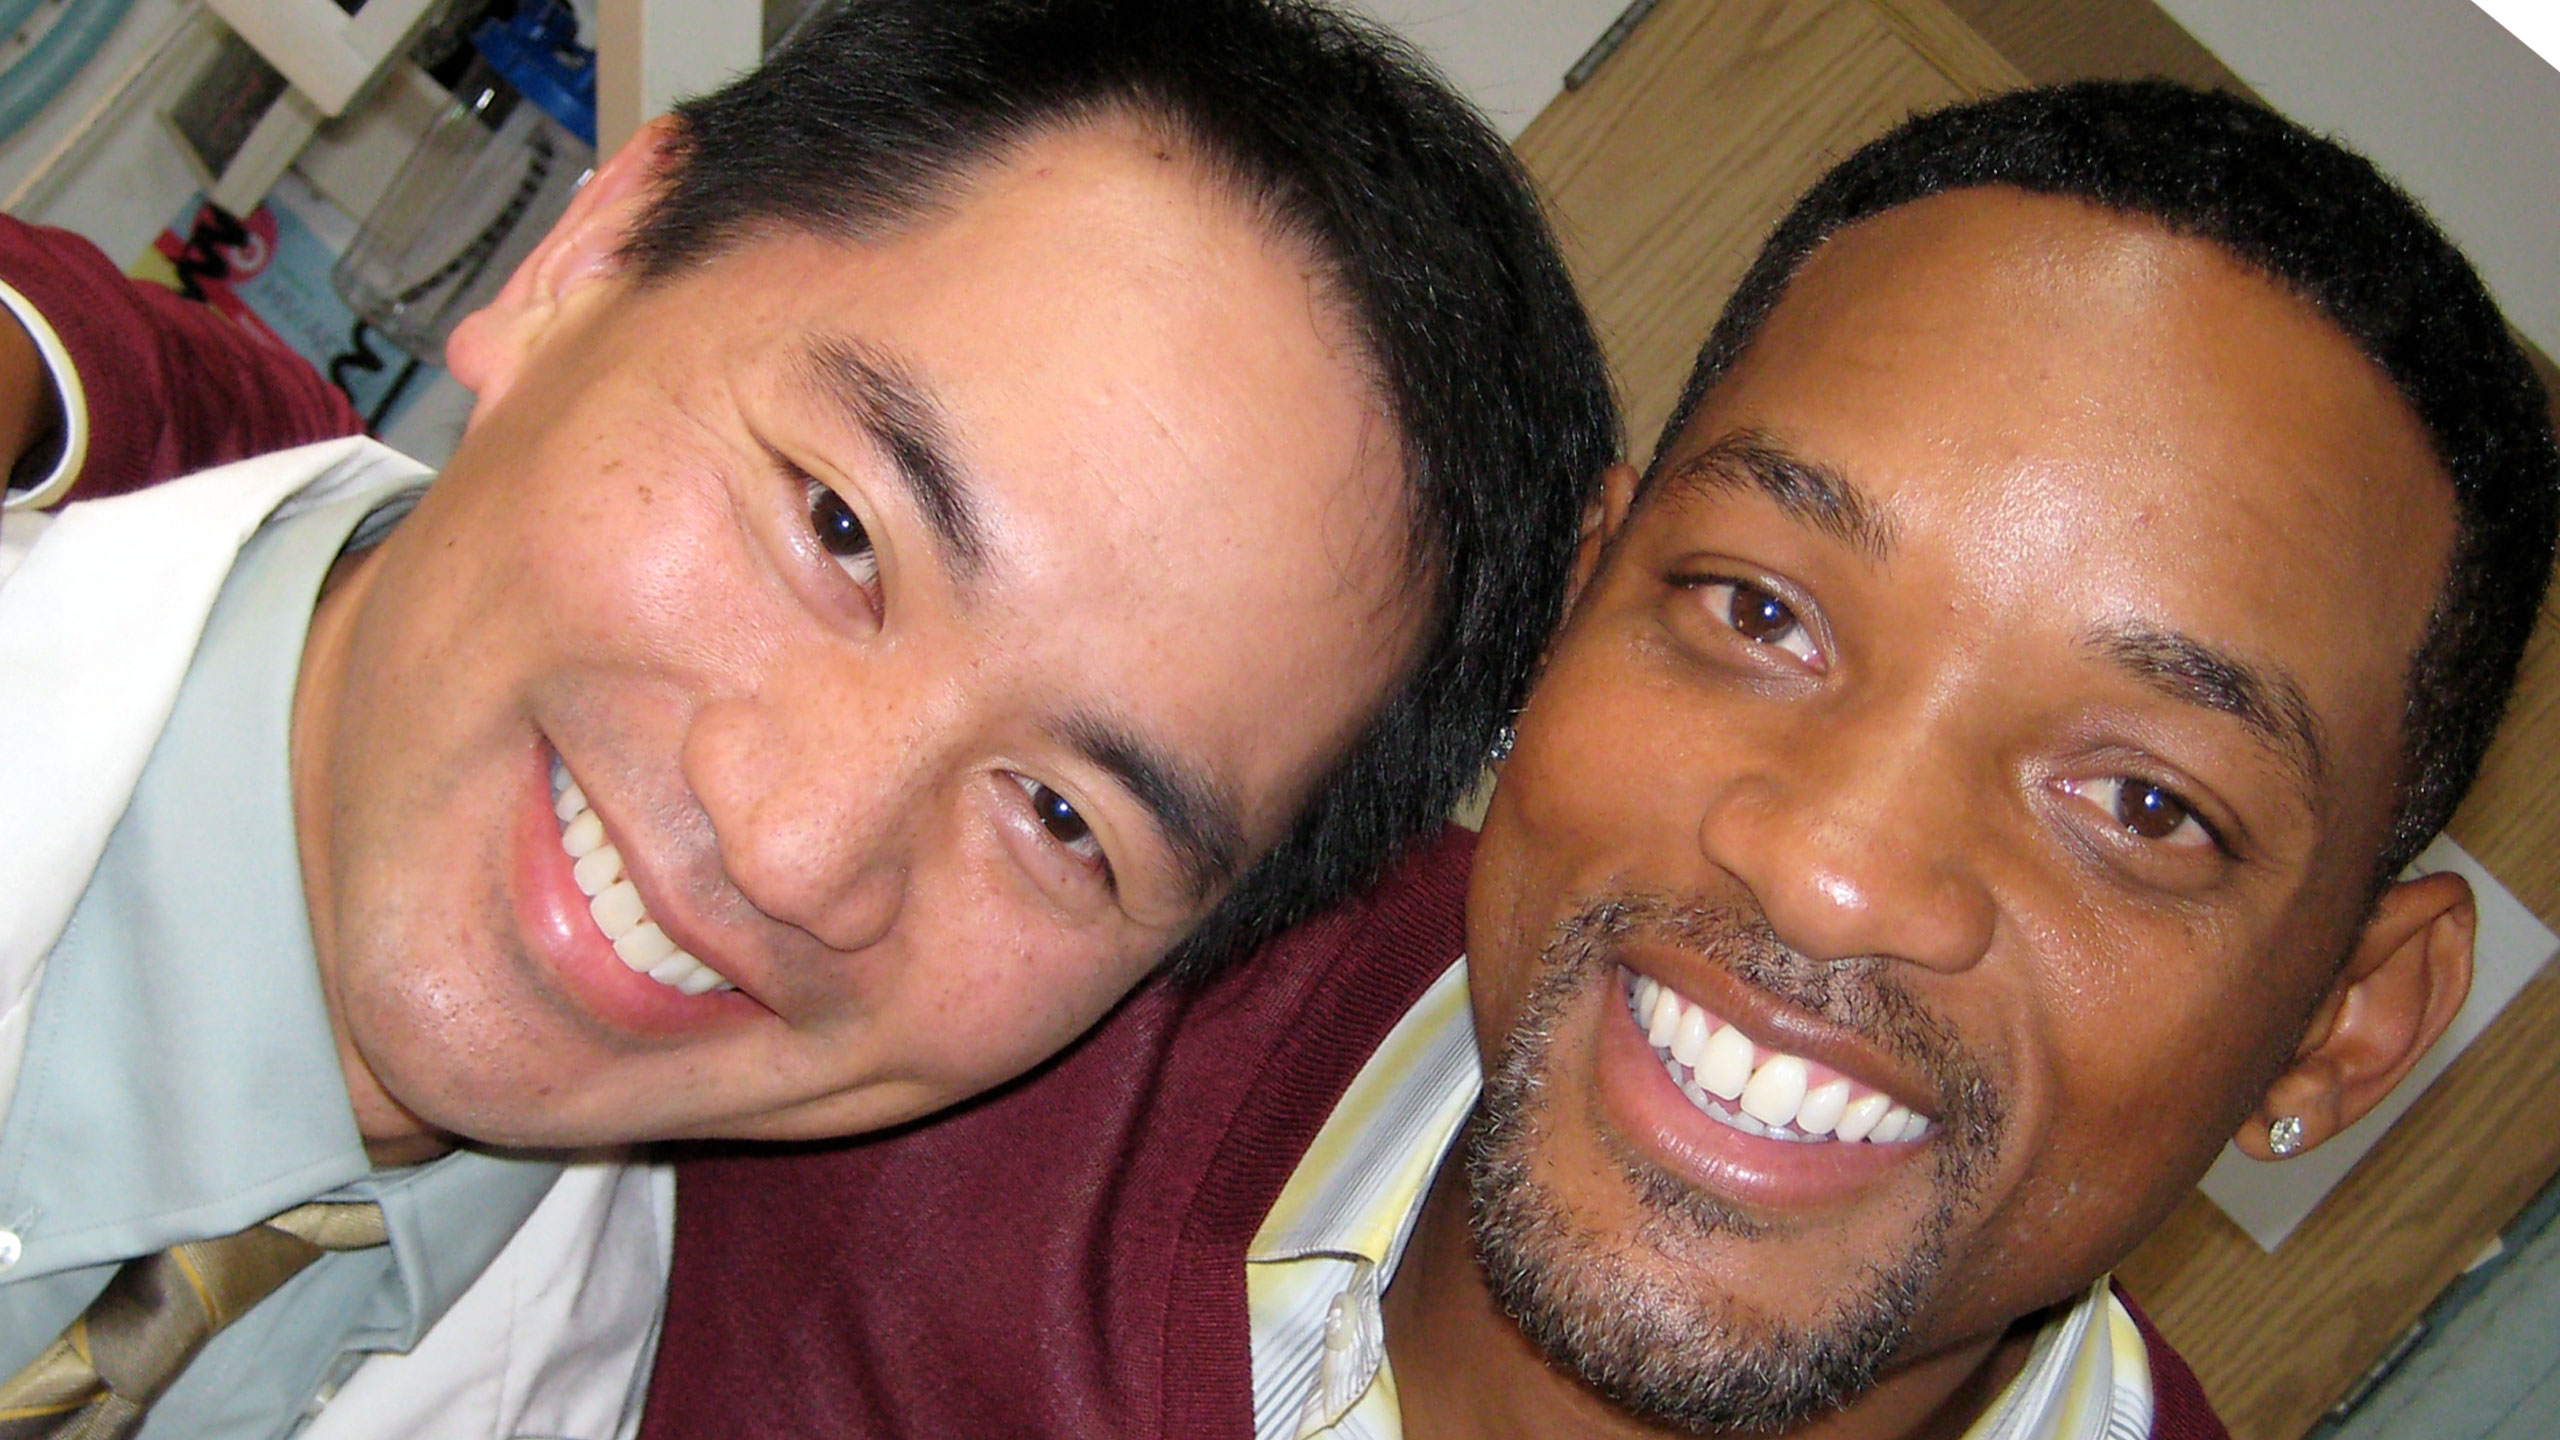 Keisuke with Will Smith